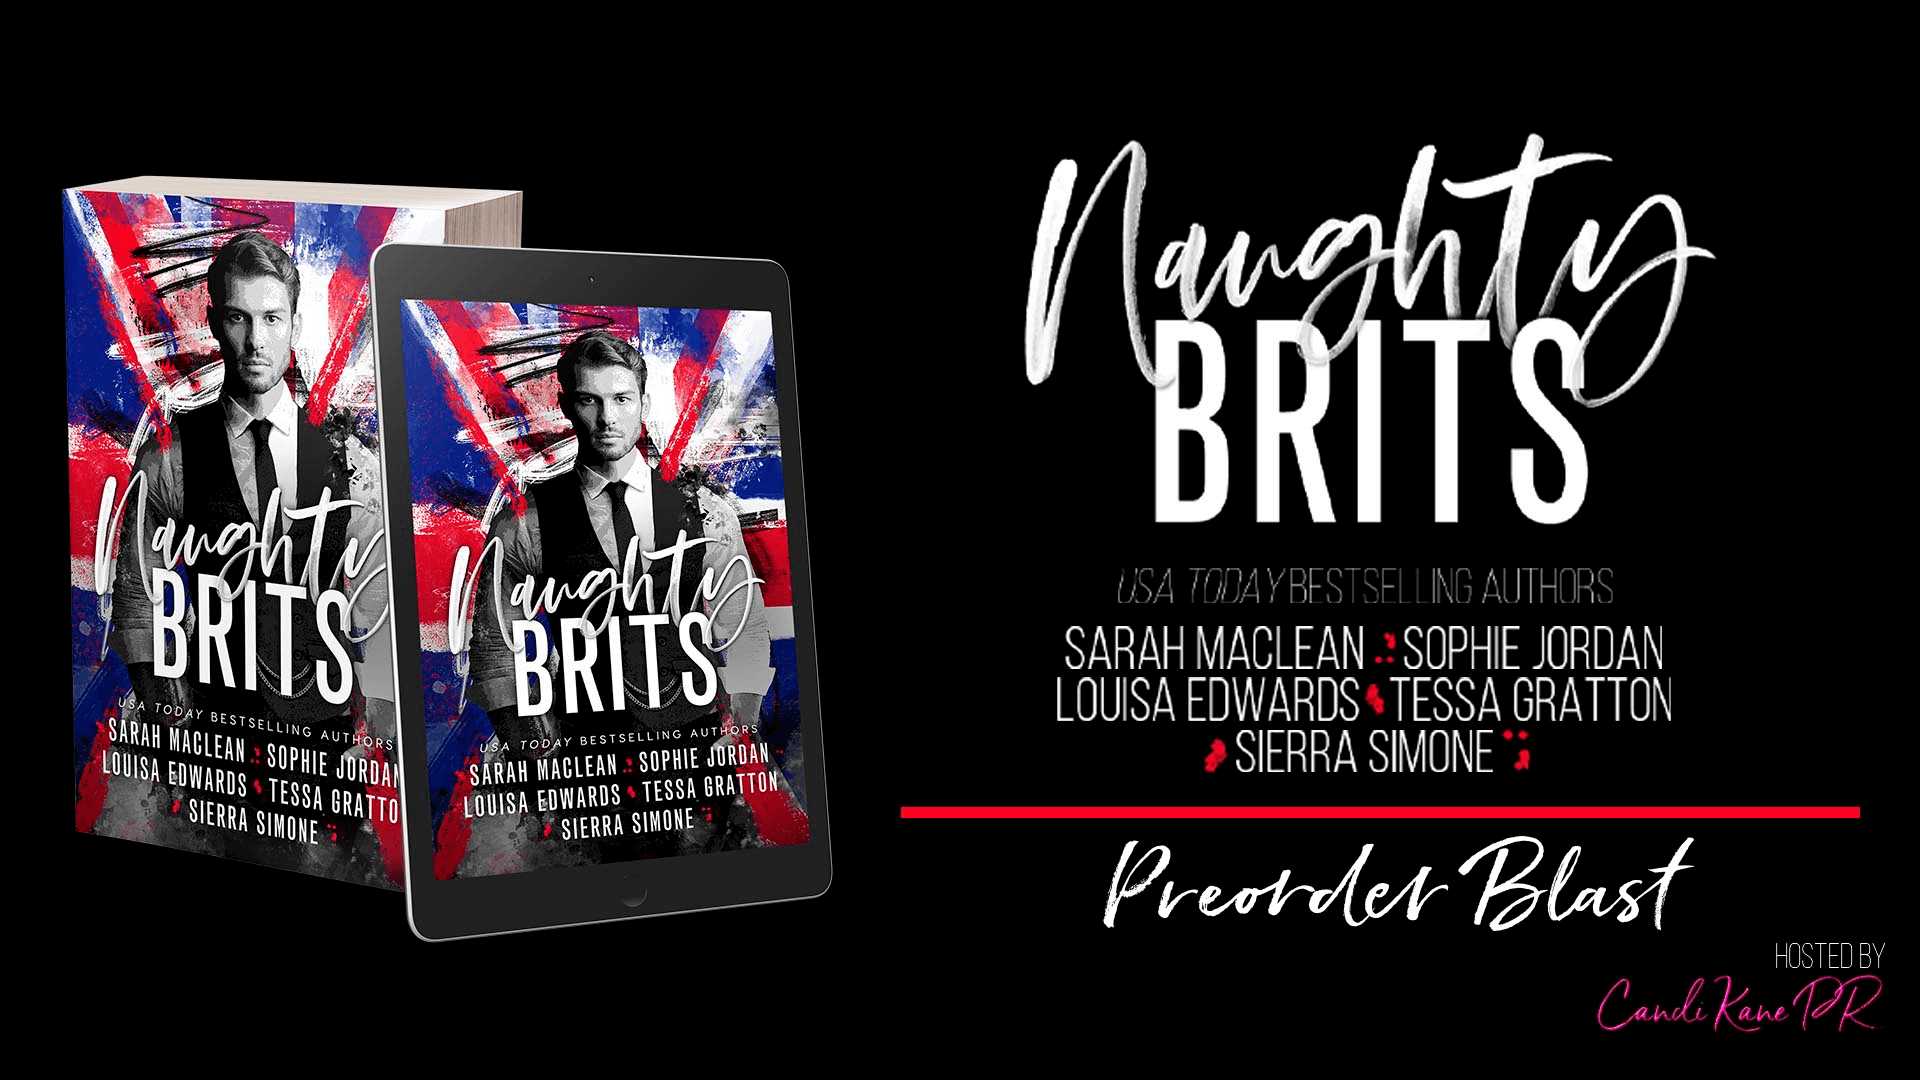 Pre-Order Blast for Naughty Brits!